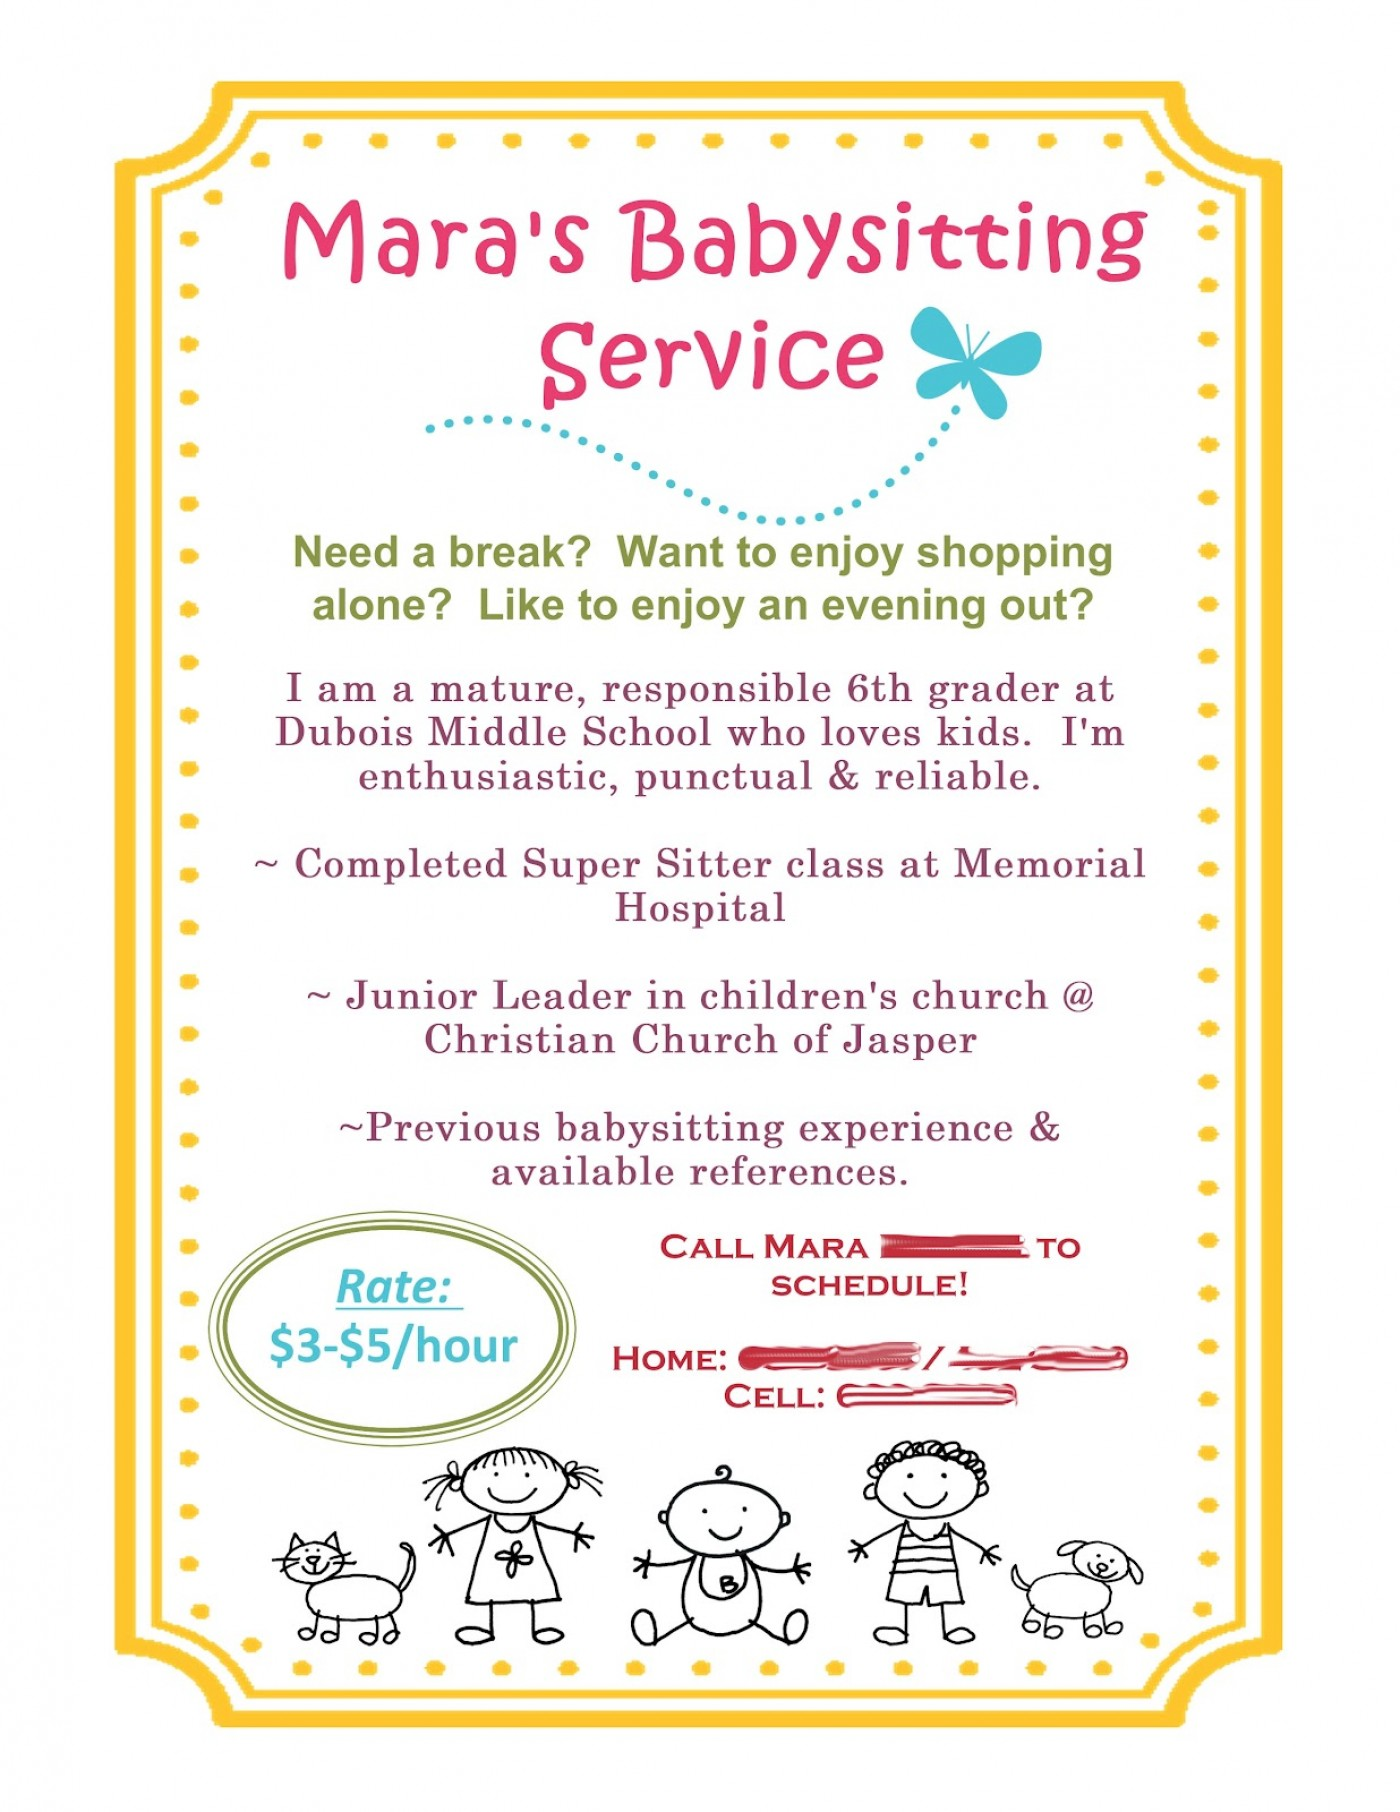 Free Babysitting Flyer Template Sample Idea  Online1400